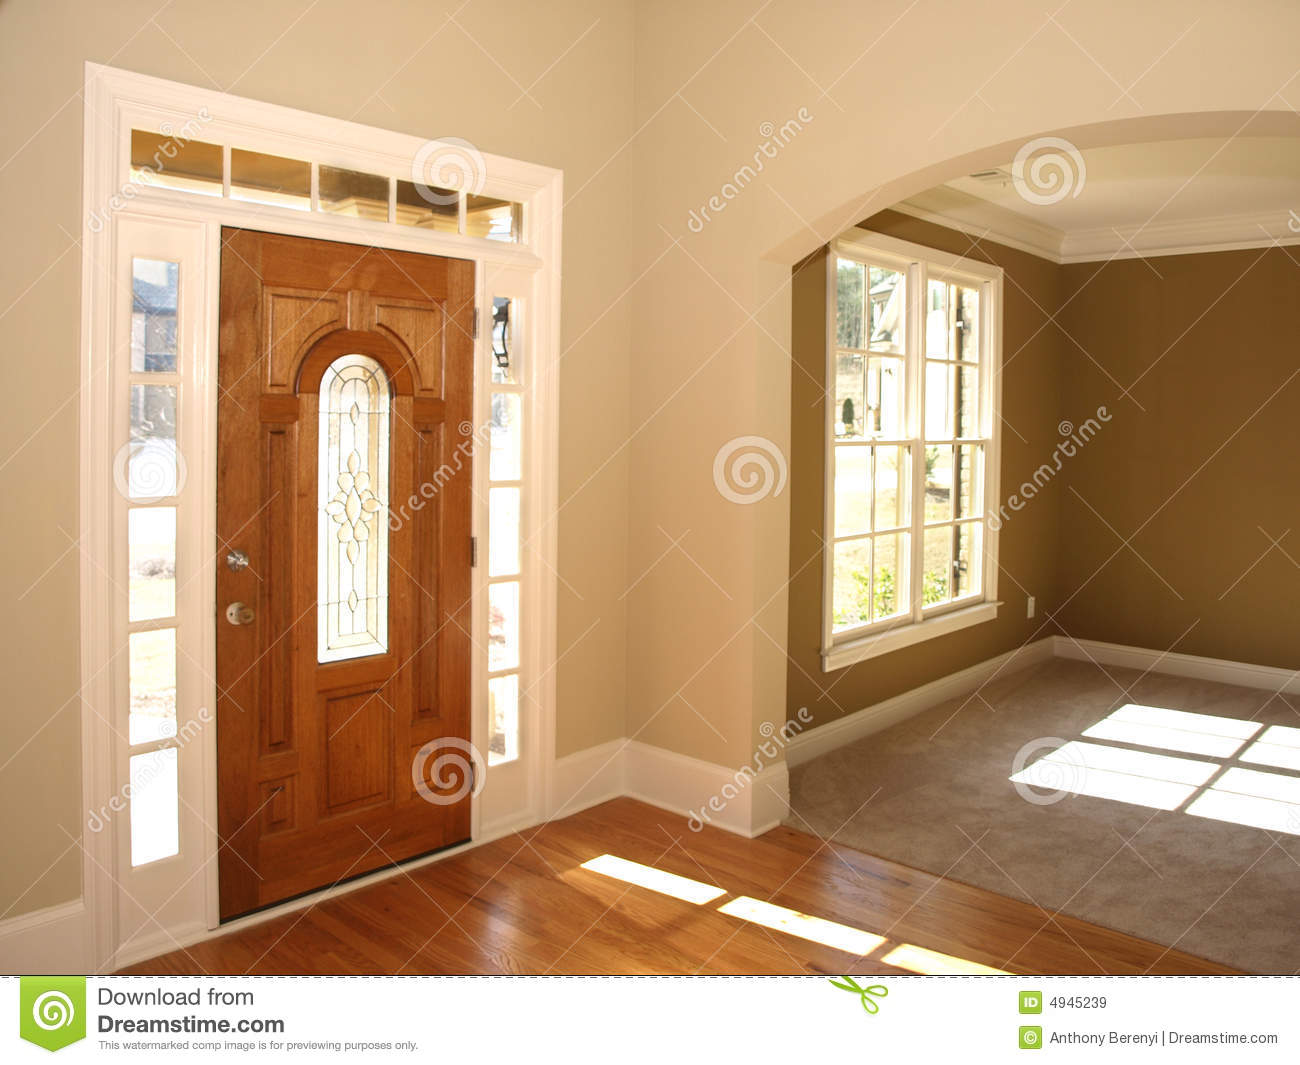 Luxury Stained Glass Door With Arch Room Royalty Free